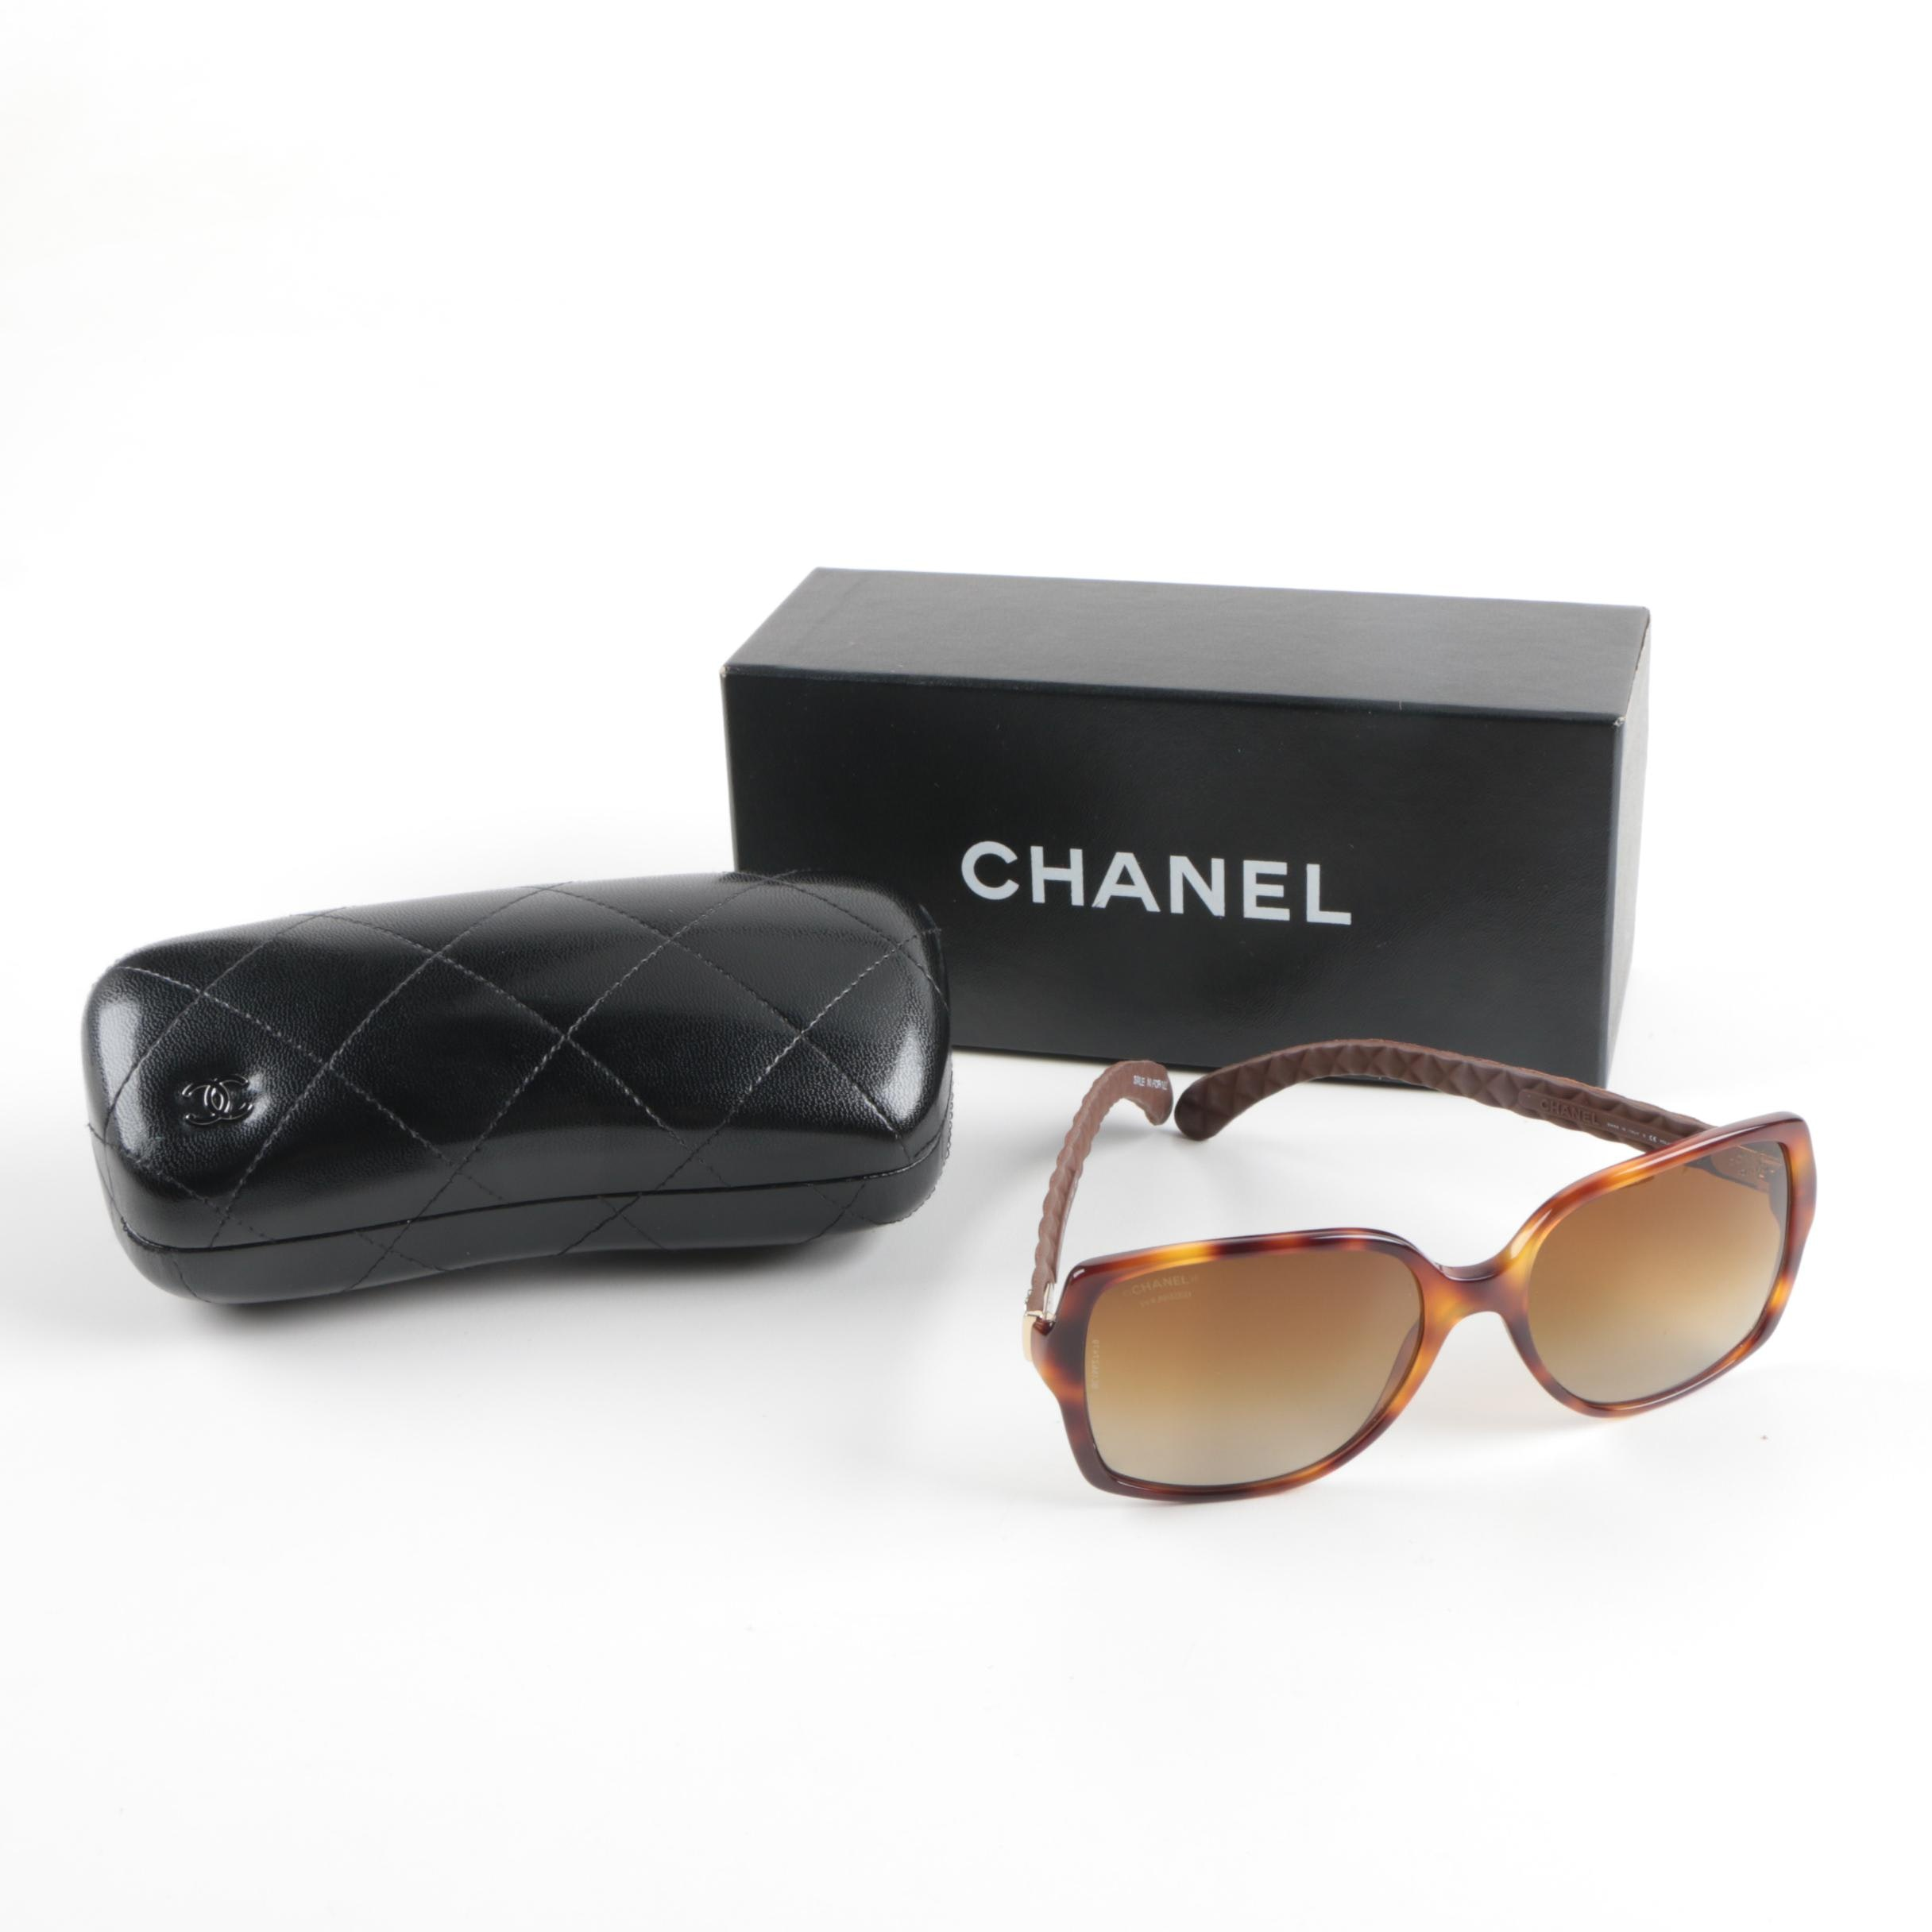 Chanel Polarizer Sample Sunglasses with Accessories